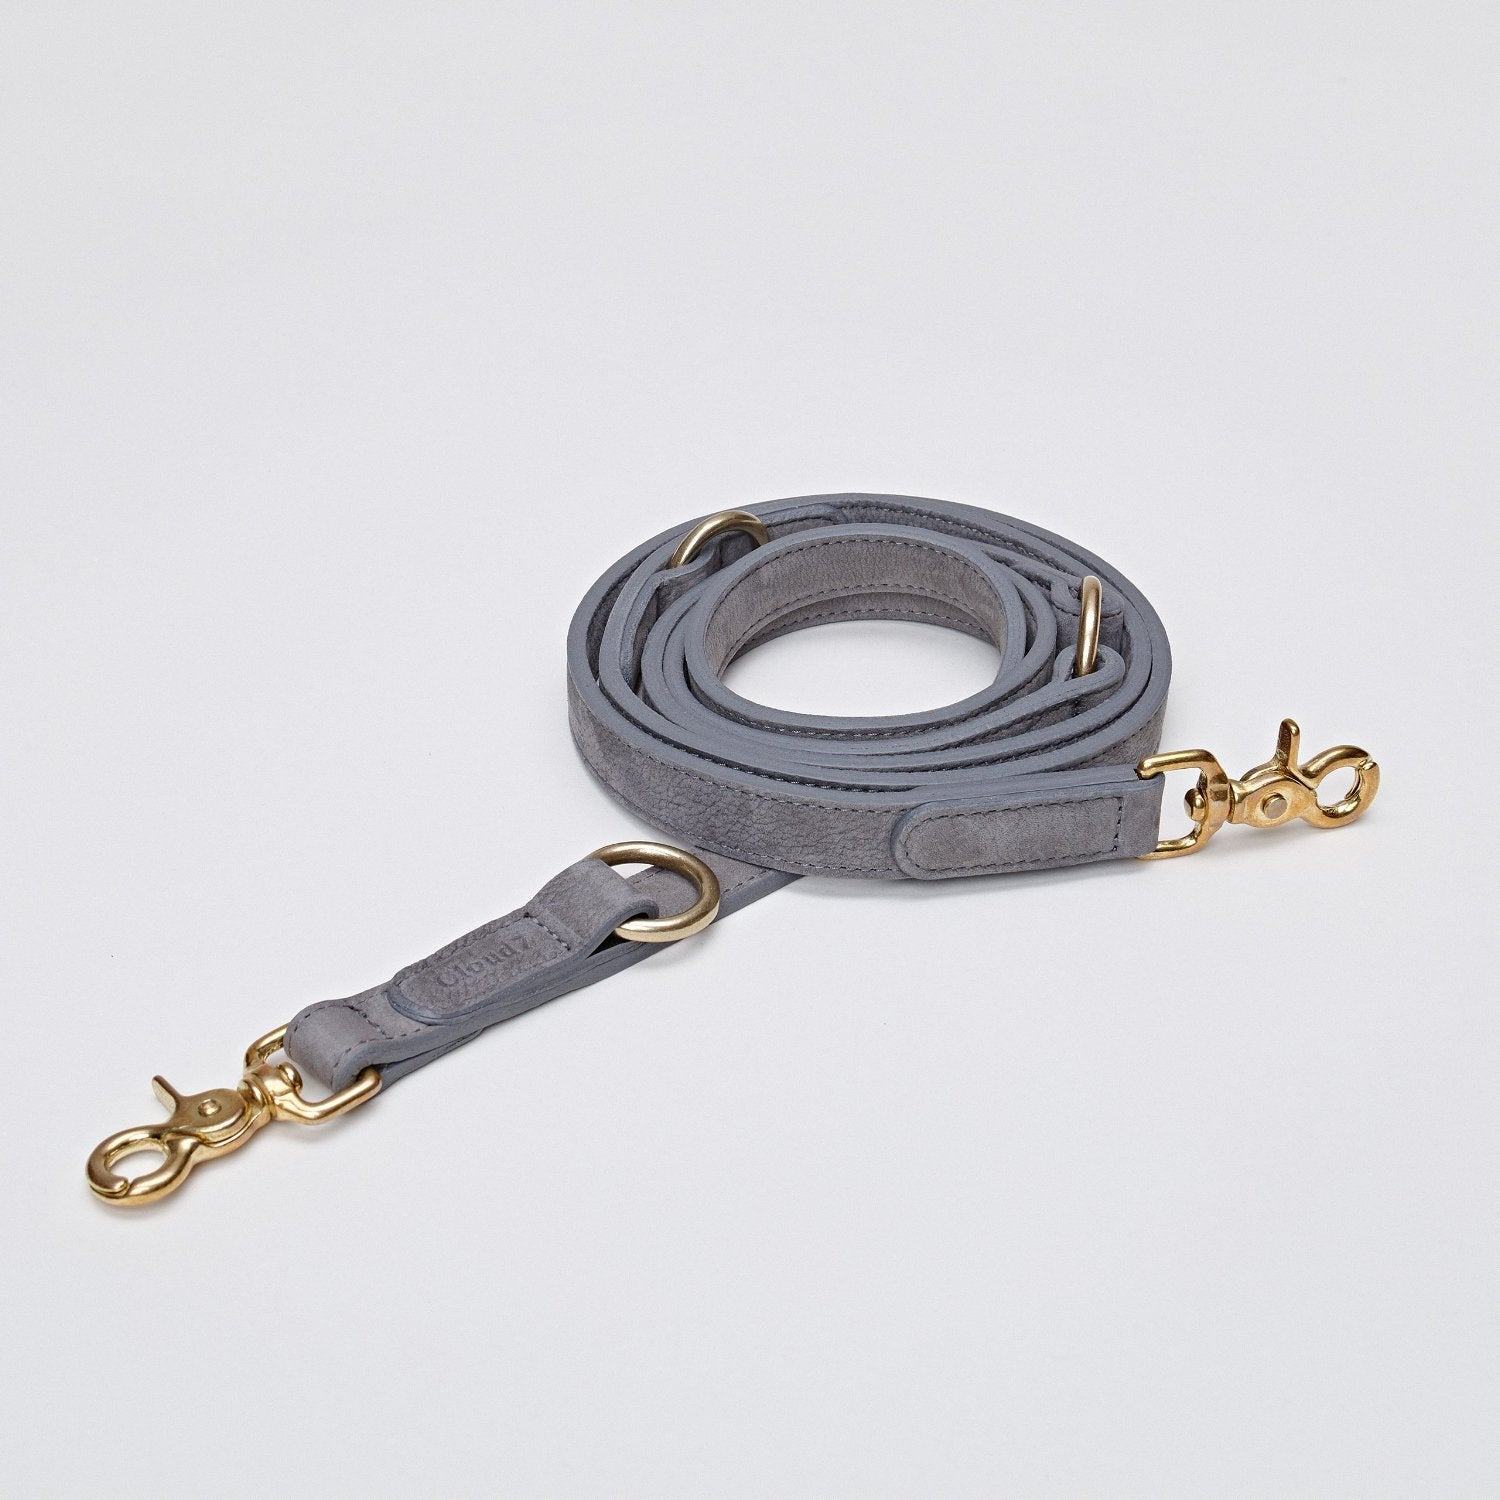 Cloud7 Tiergarten Nubuck Leather Dog Lead